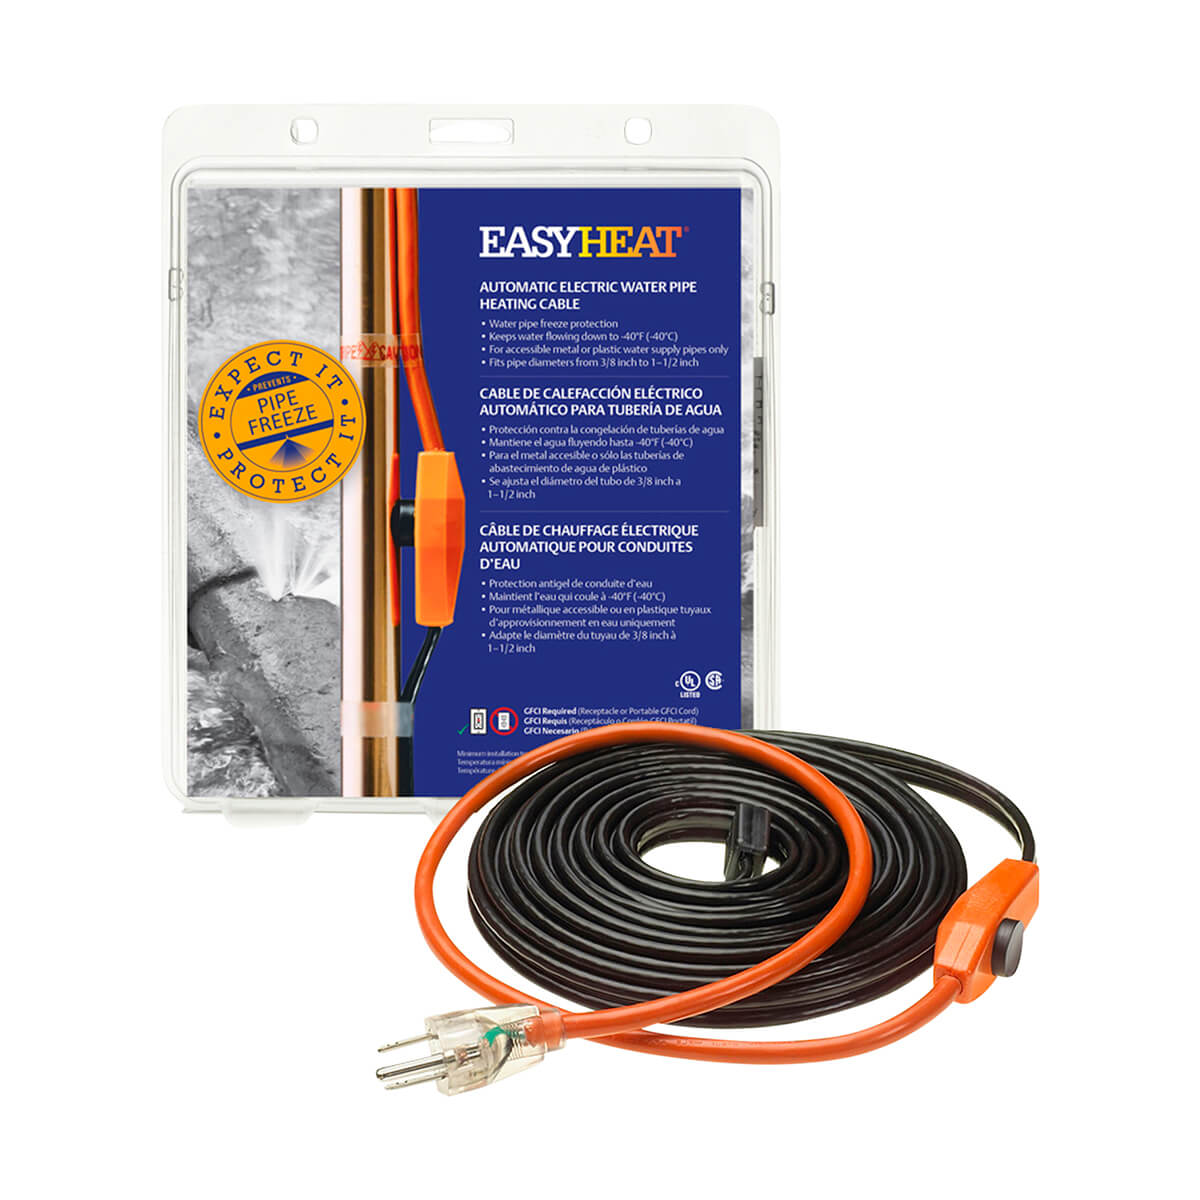 Pipe Heating Cable - 15'